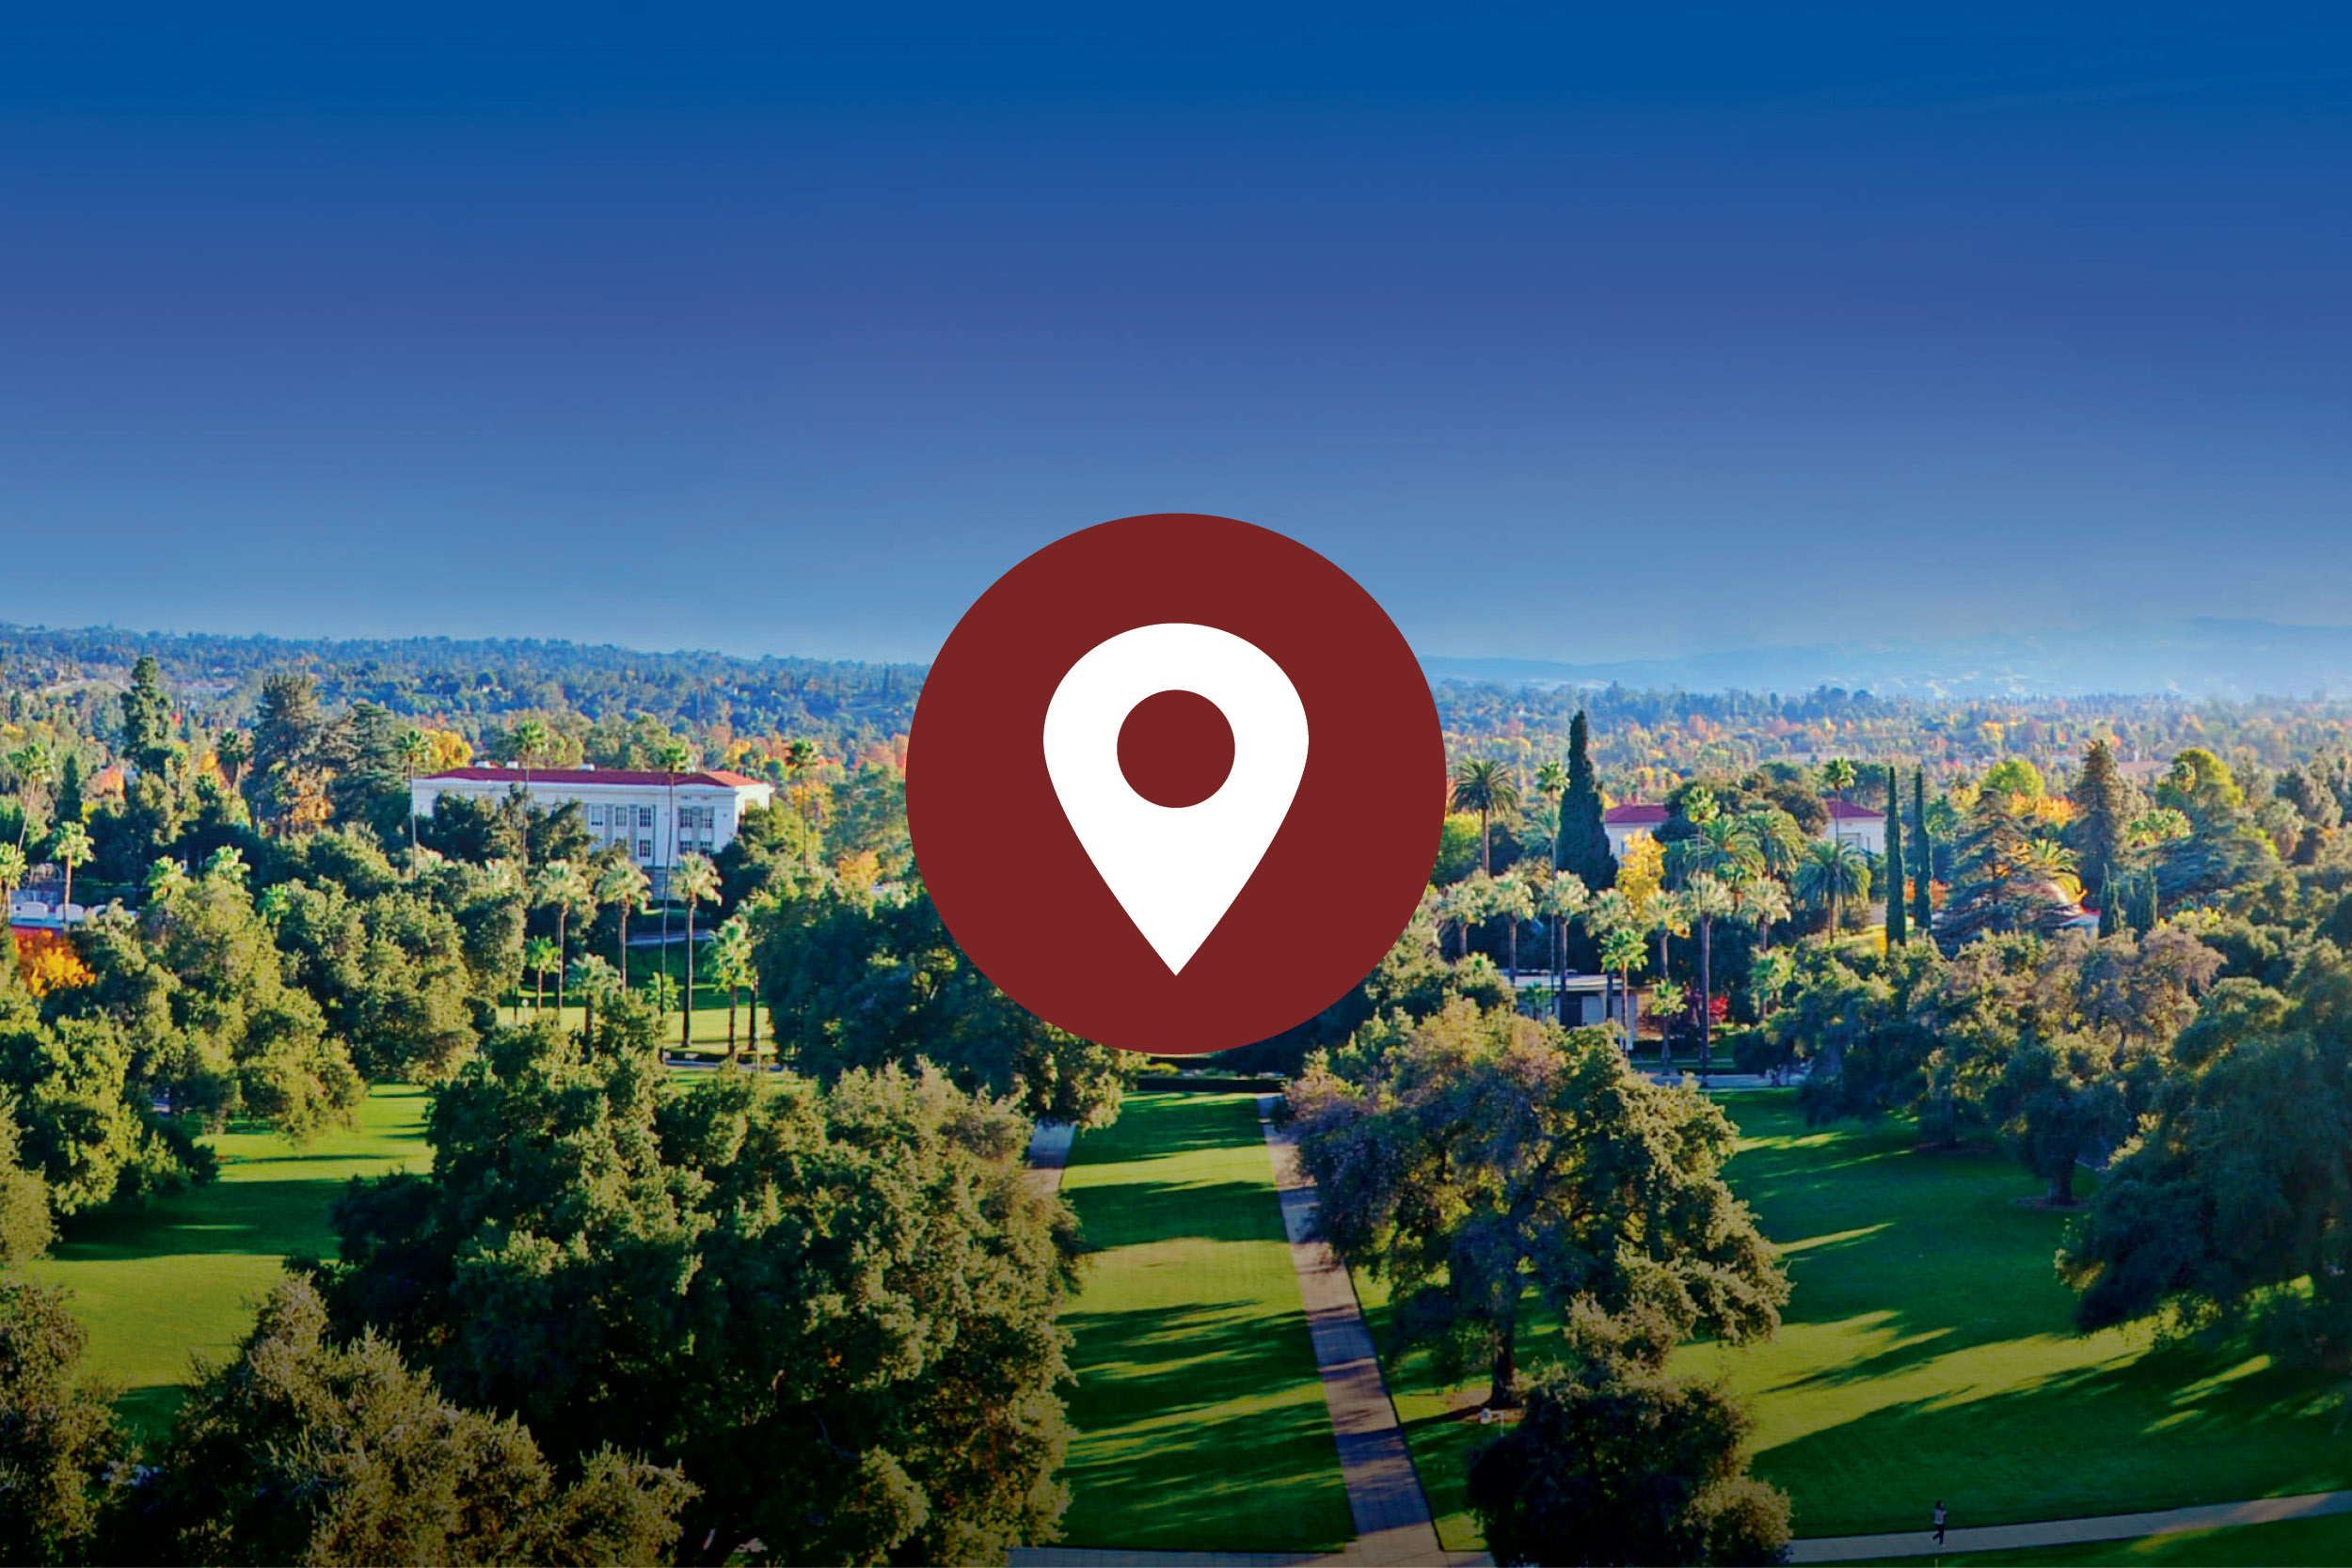 Campus Map | University of Redlands on west liberty university map, ucr graduation, ucr financial aid, ucr baseball field, ucr botanical gardens, ucr map california, ucr dorms, ucr colors, ucr classroom, ucr bell tower, ucr arts building map, ucr famous alumni, ucr hinderaker hall, ucr virtual tour, moreno valley college map, ucr athletics, ucr career center, ucr library, ucr bookstore,